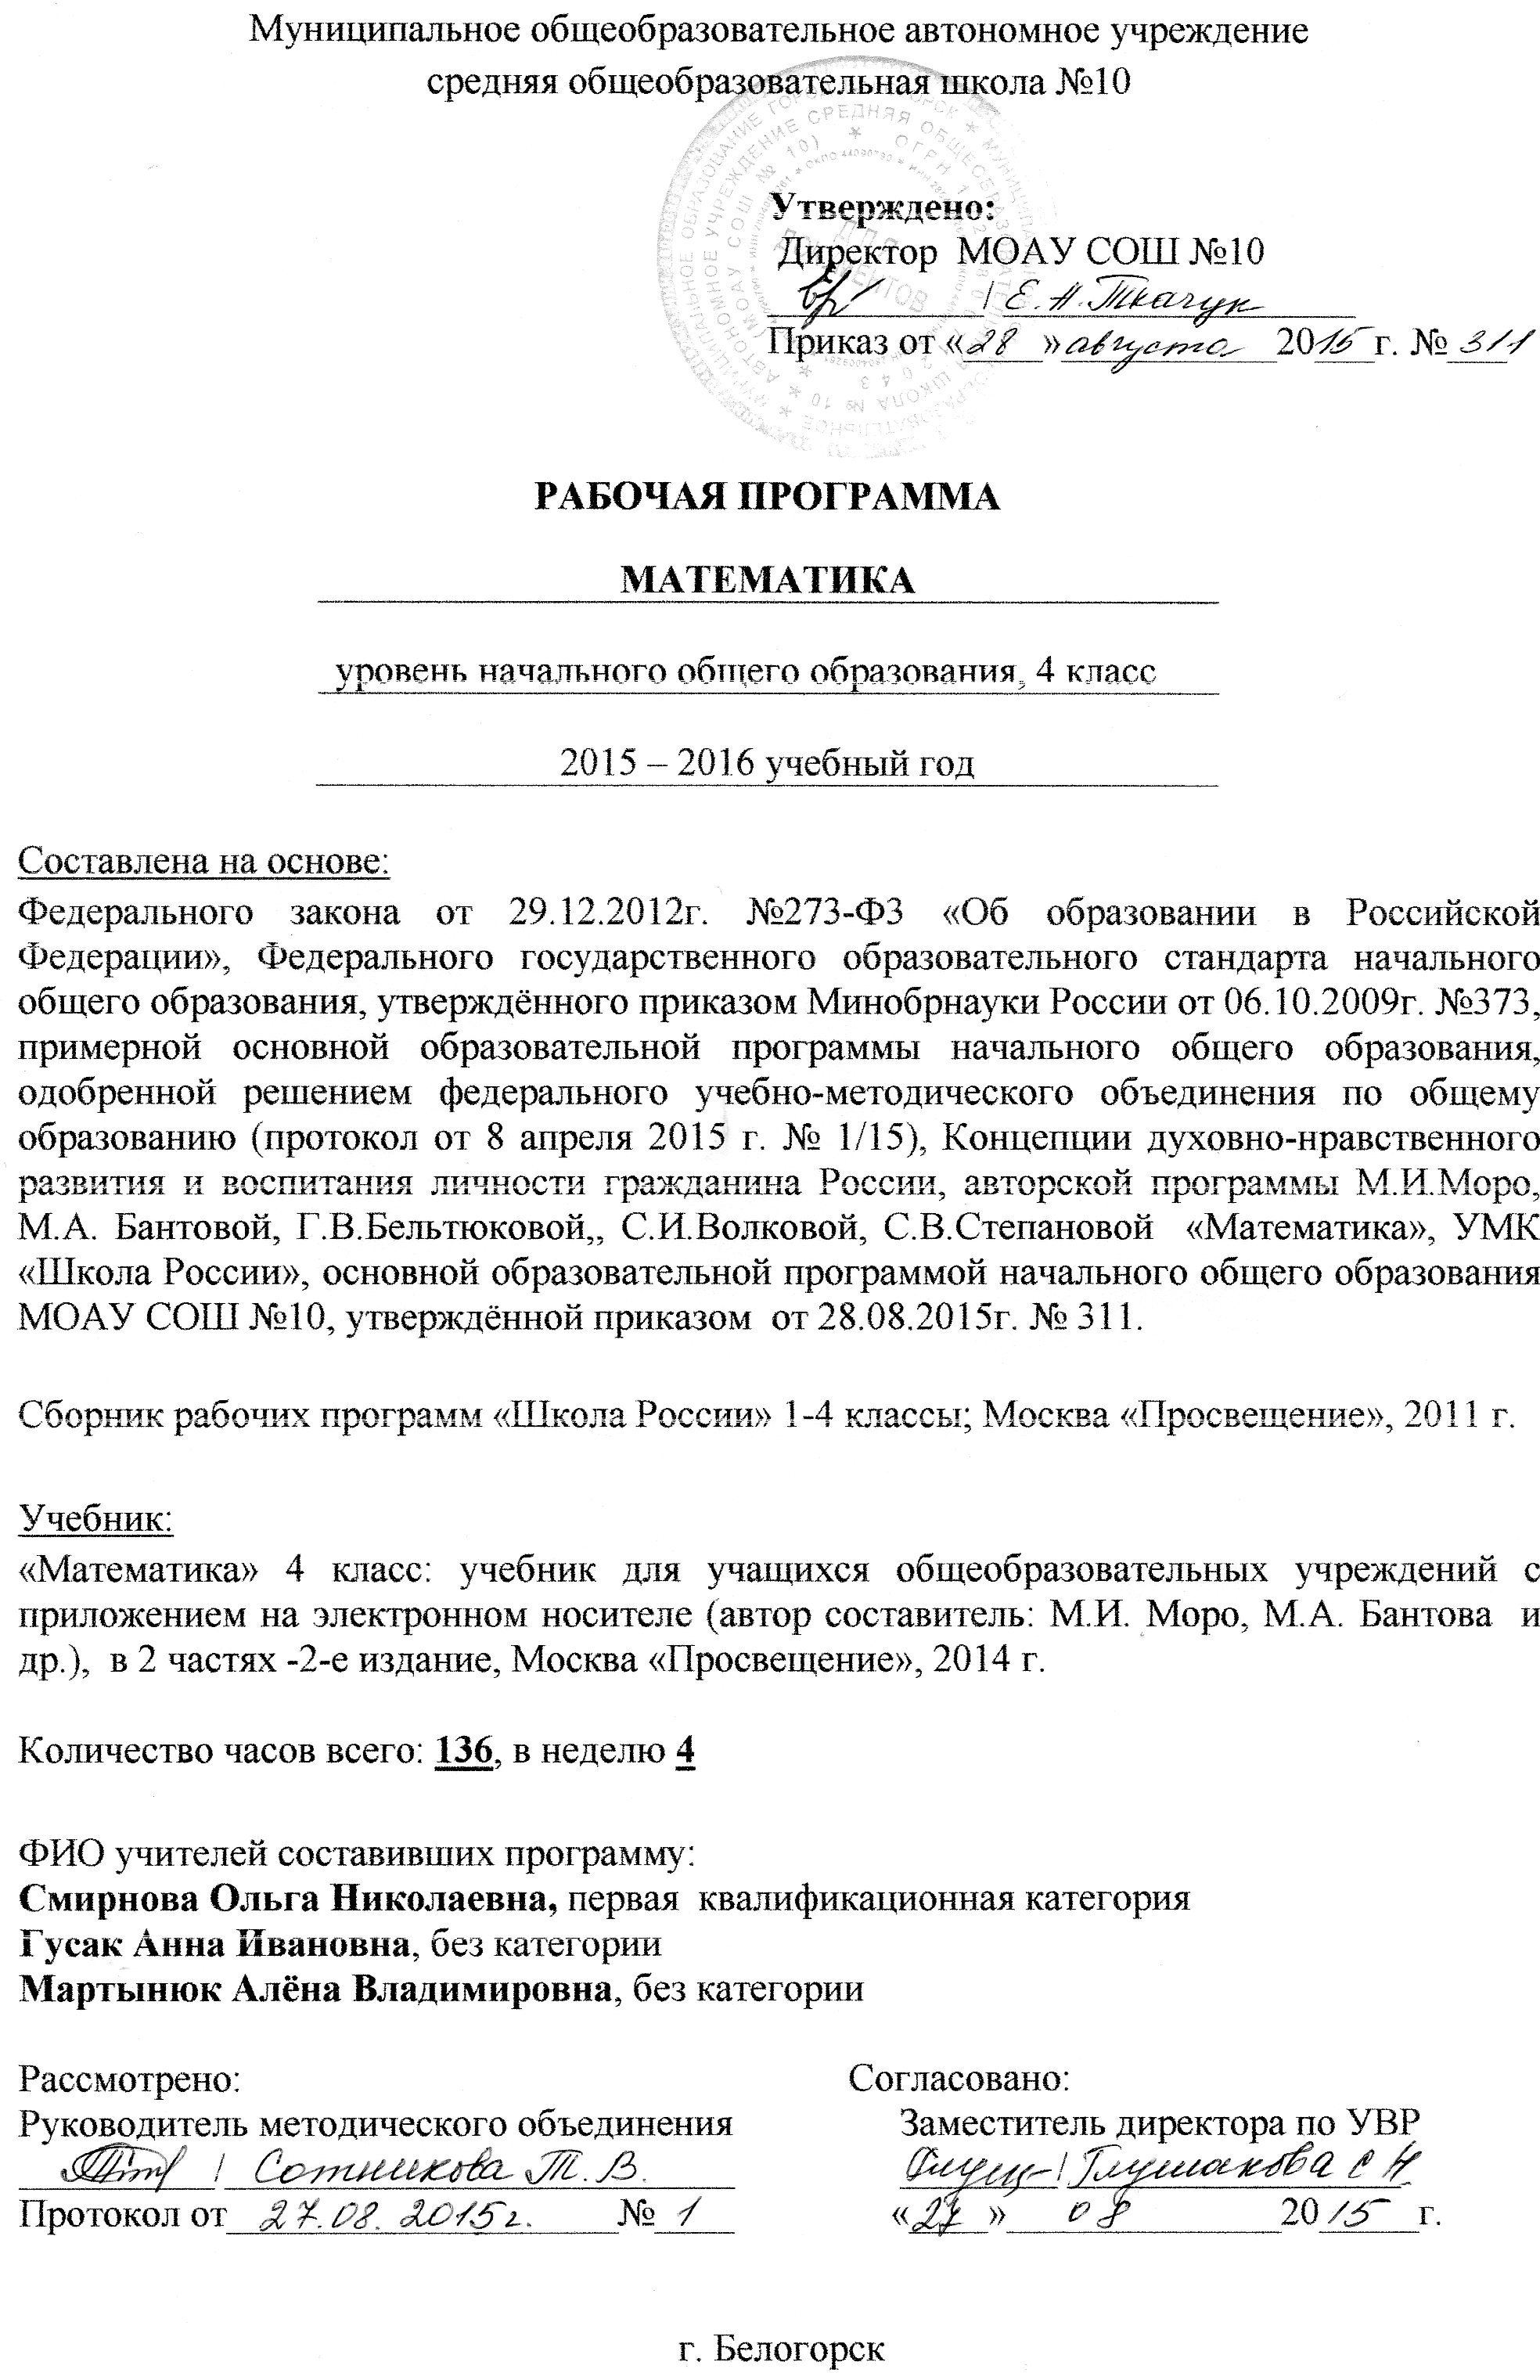 C:\Users\DIMA\Pictures\img074.jpg